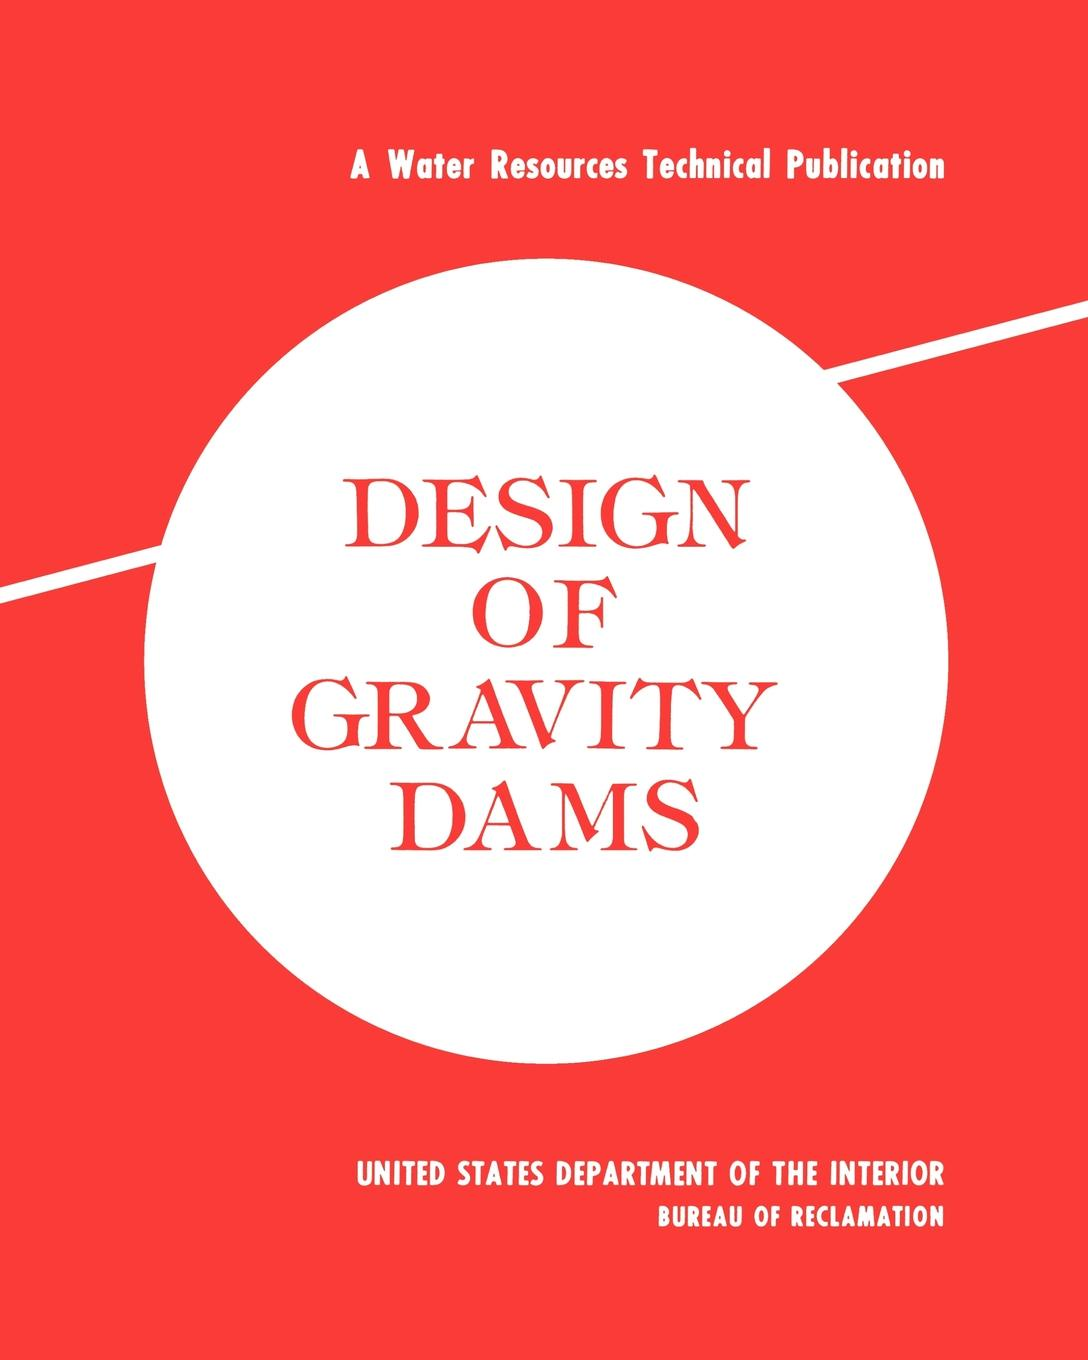 Bureau of Reclamation, U.S. Department of the Interior Design of Gravity Dams. Design Manual for Concrete Gravity Dams (A Water Resources Technical Publication) книга open water diver manual